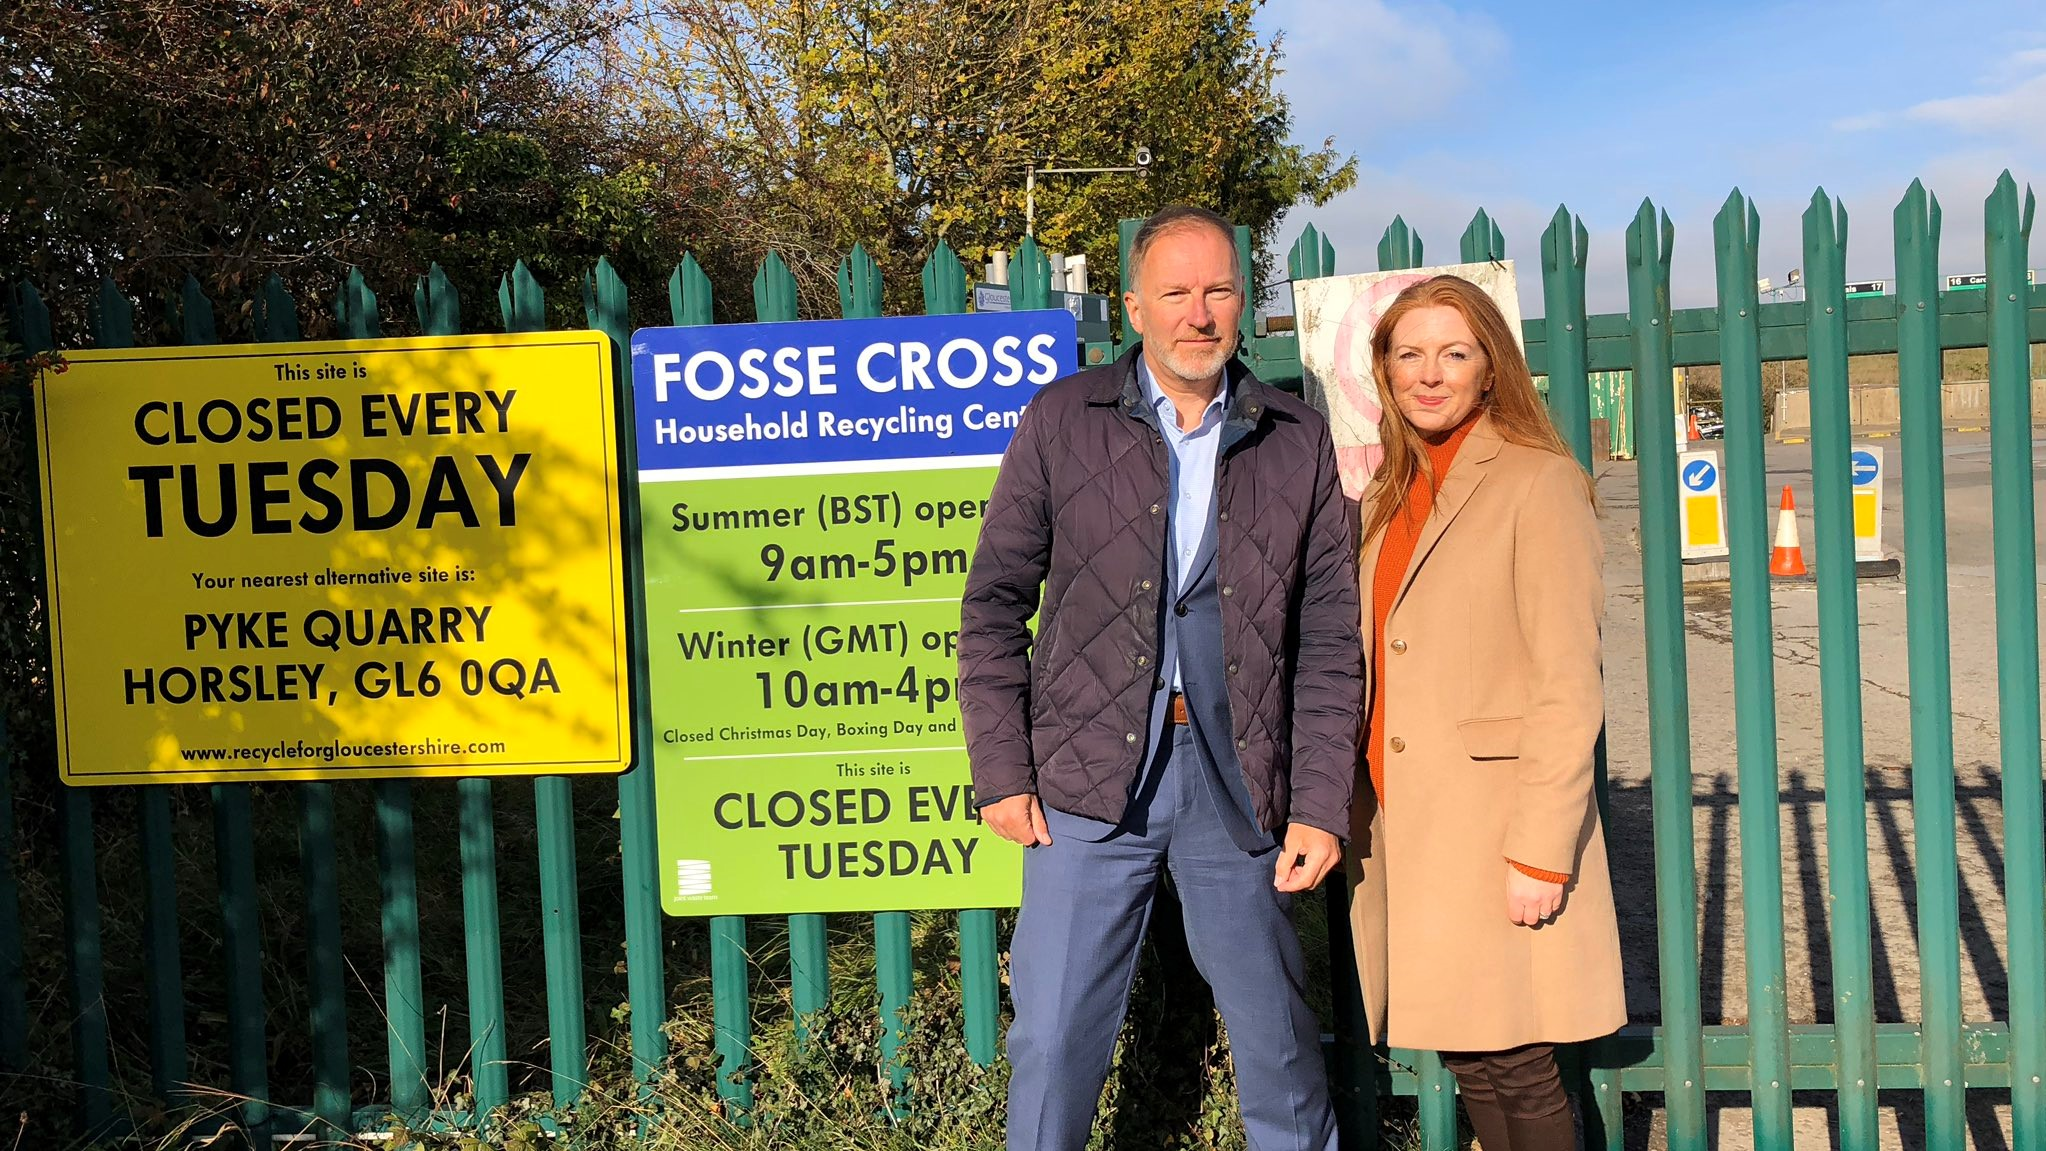 Fosse Cross Household Recycling Centre to re-open!